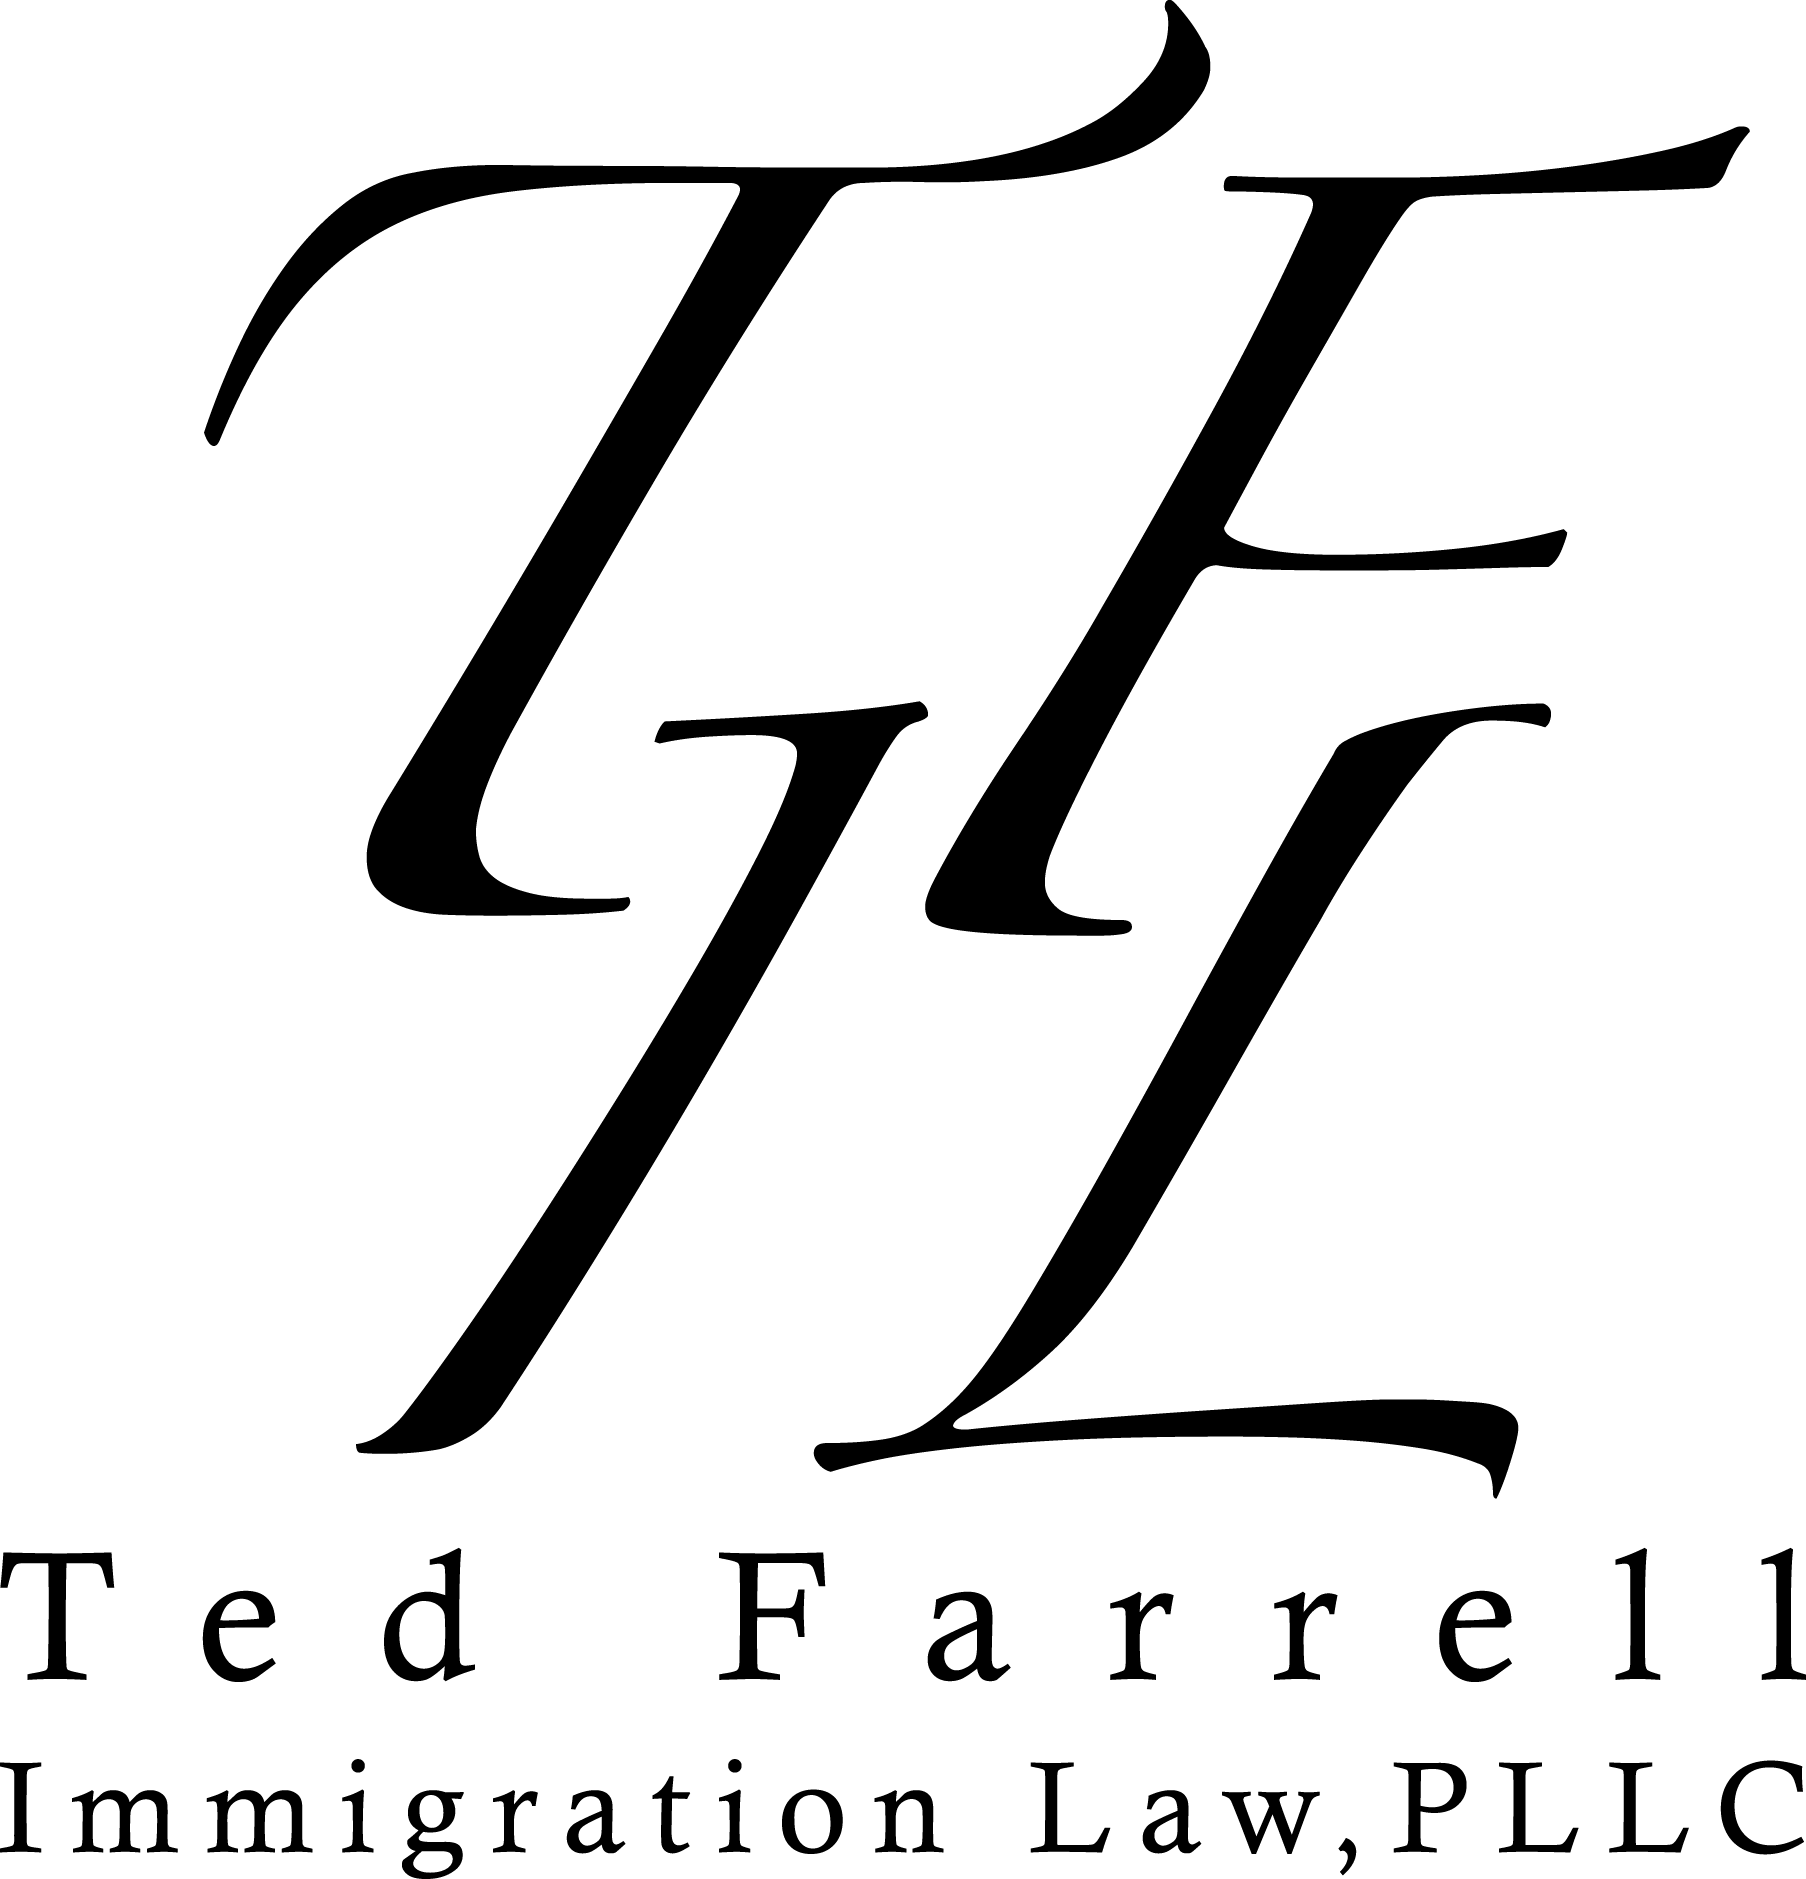 Immigrant drawing empathy. Ted farrell immigration law